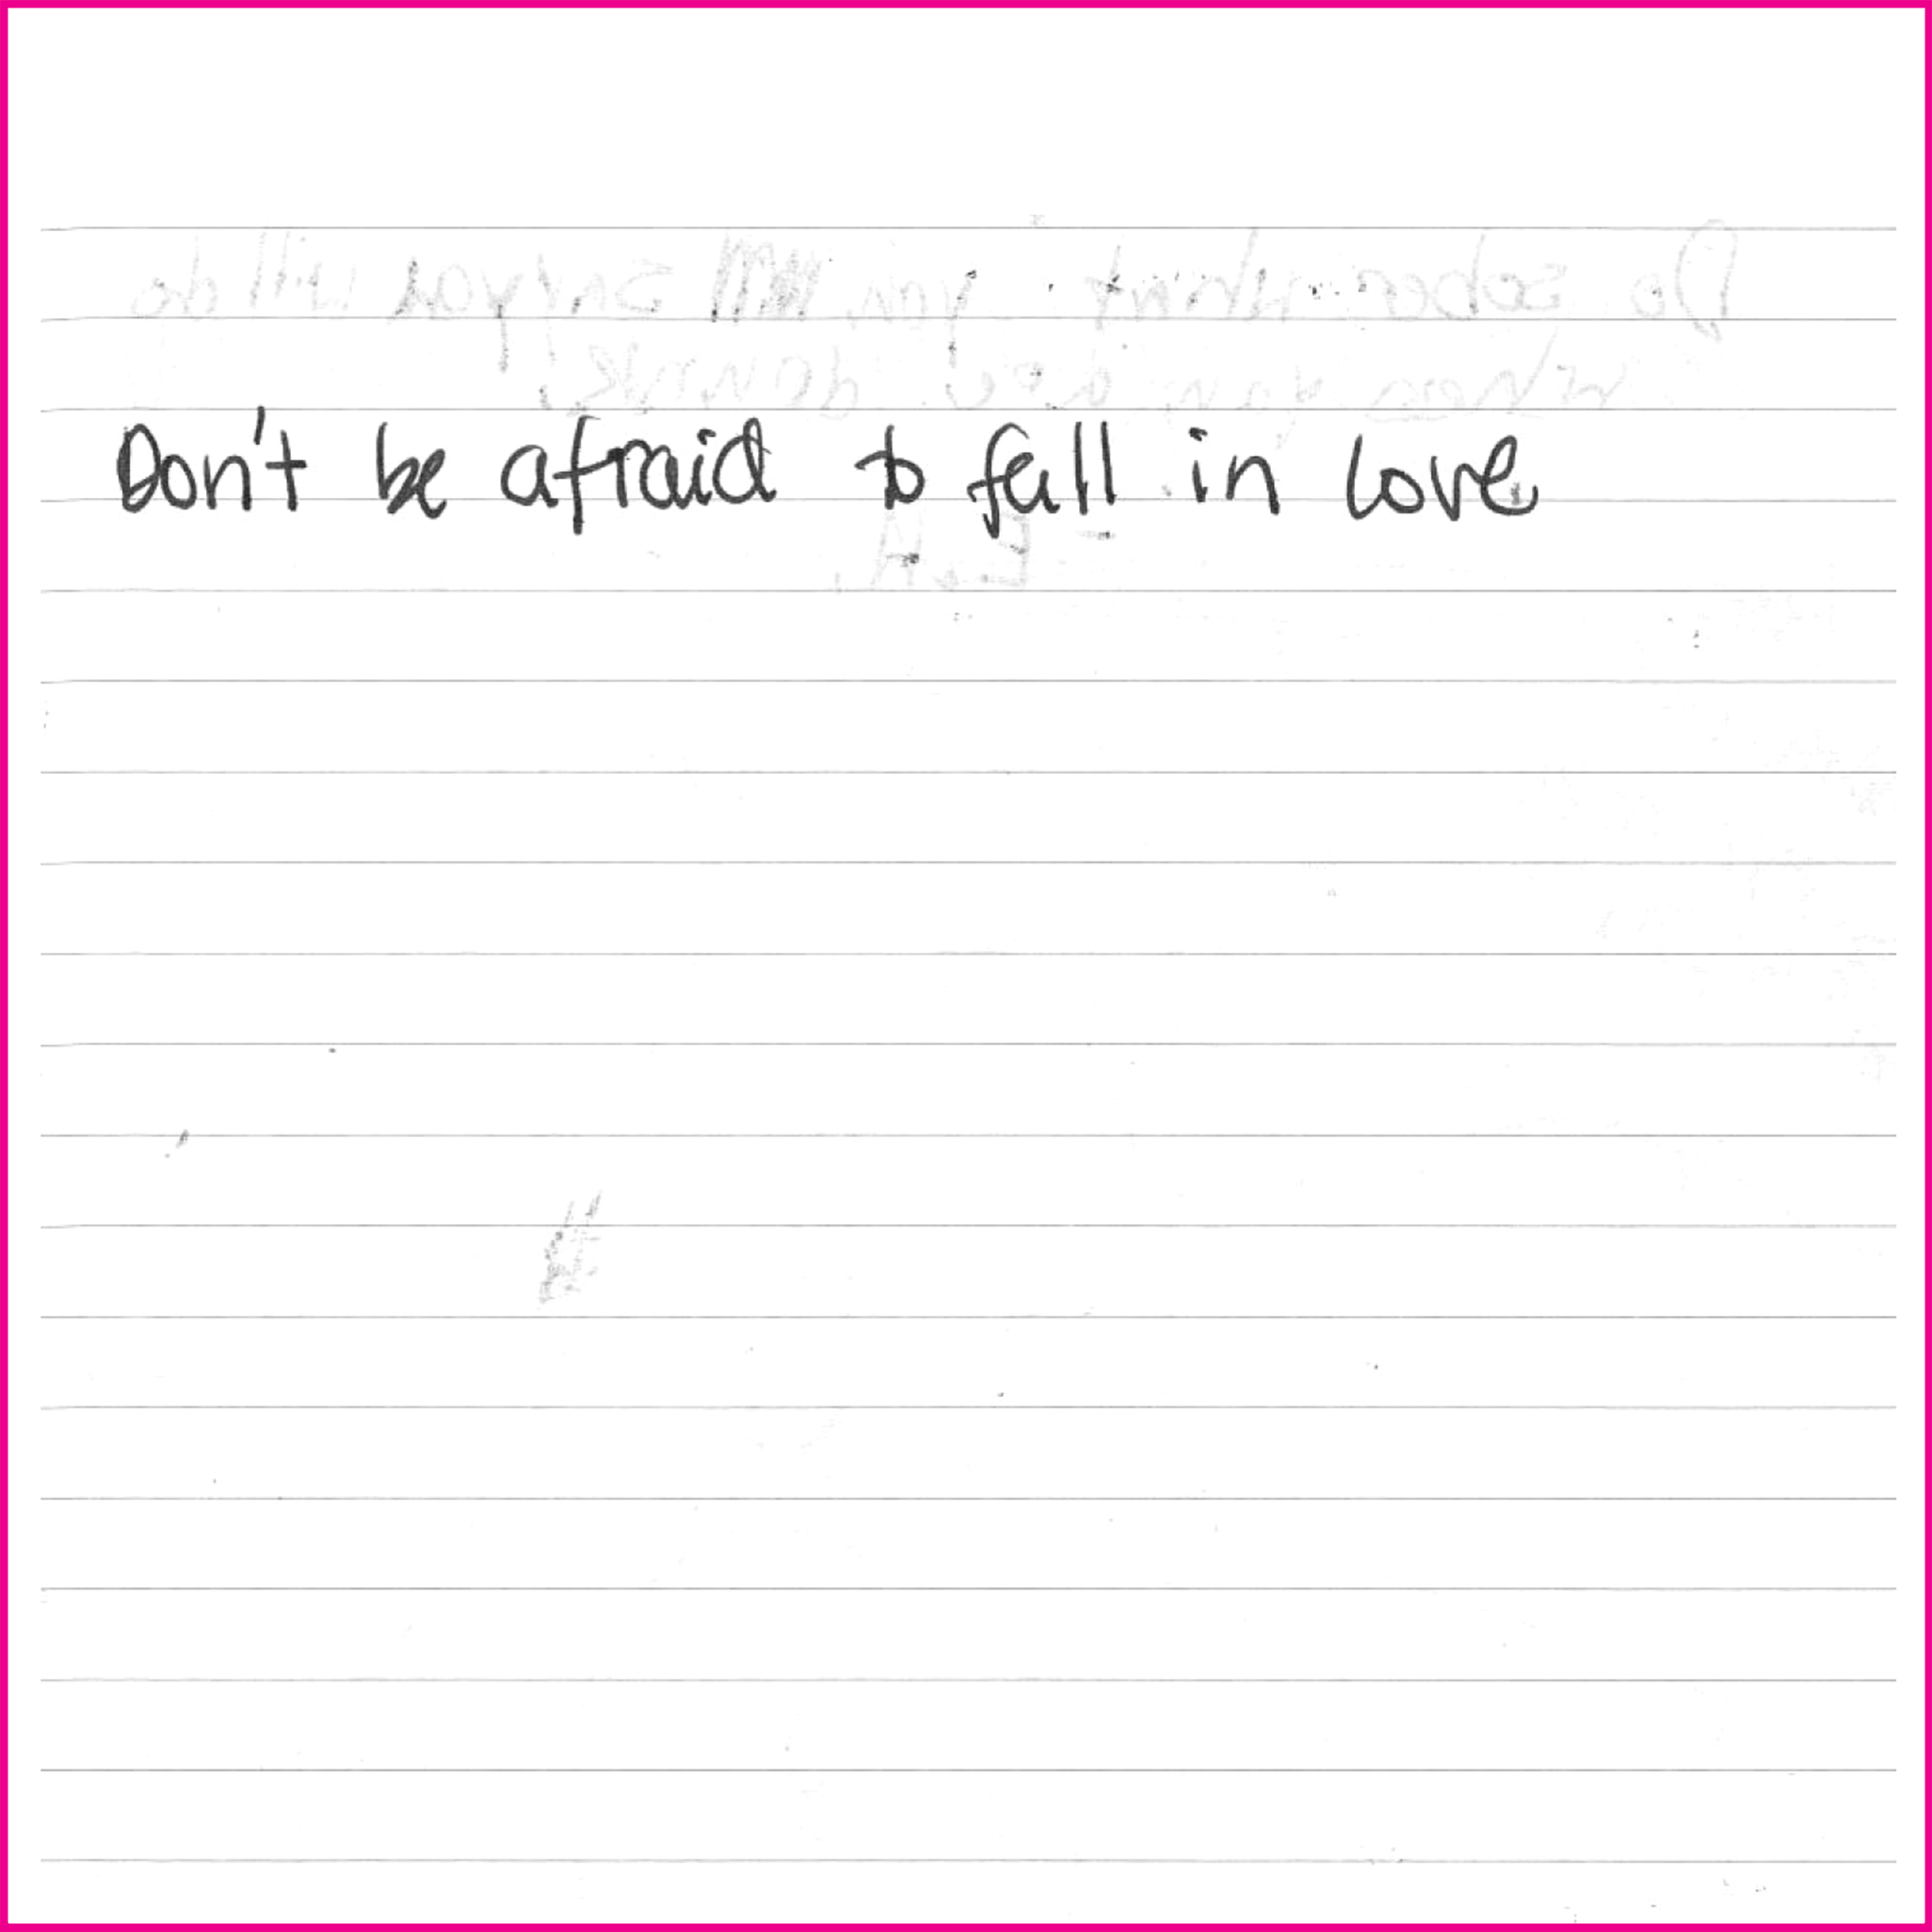 Don't be afraid to fall in love.